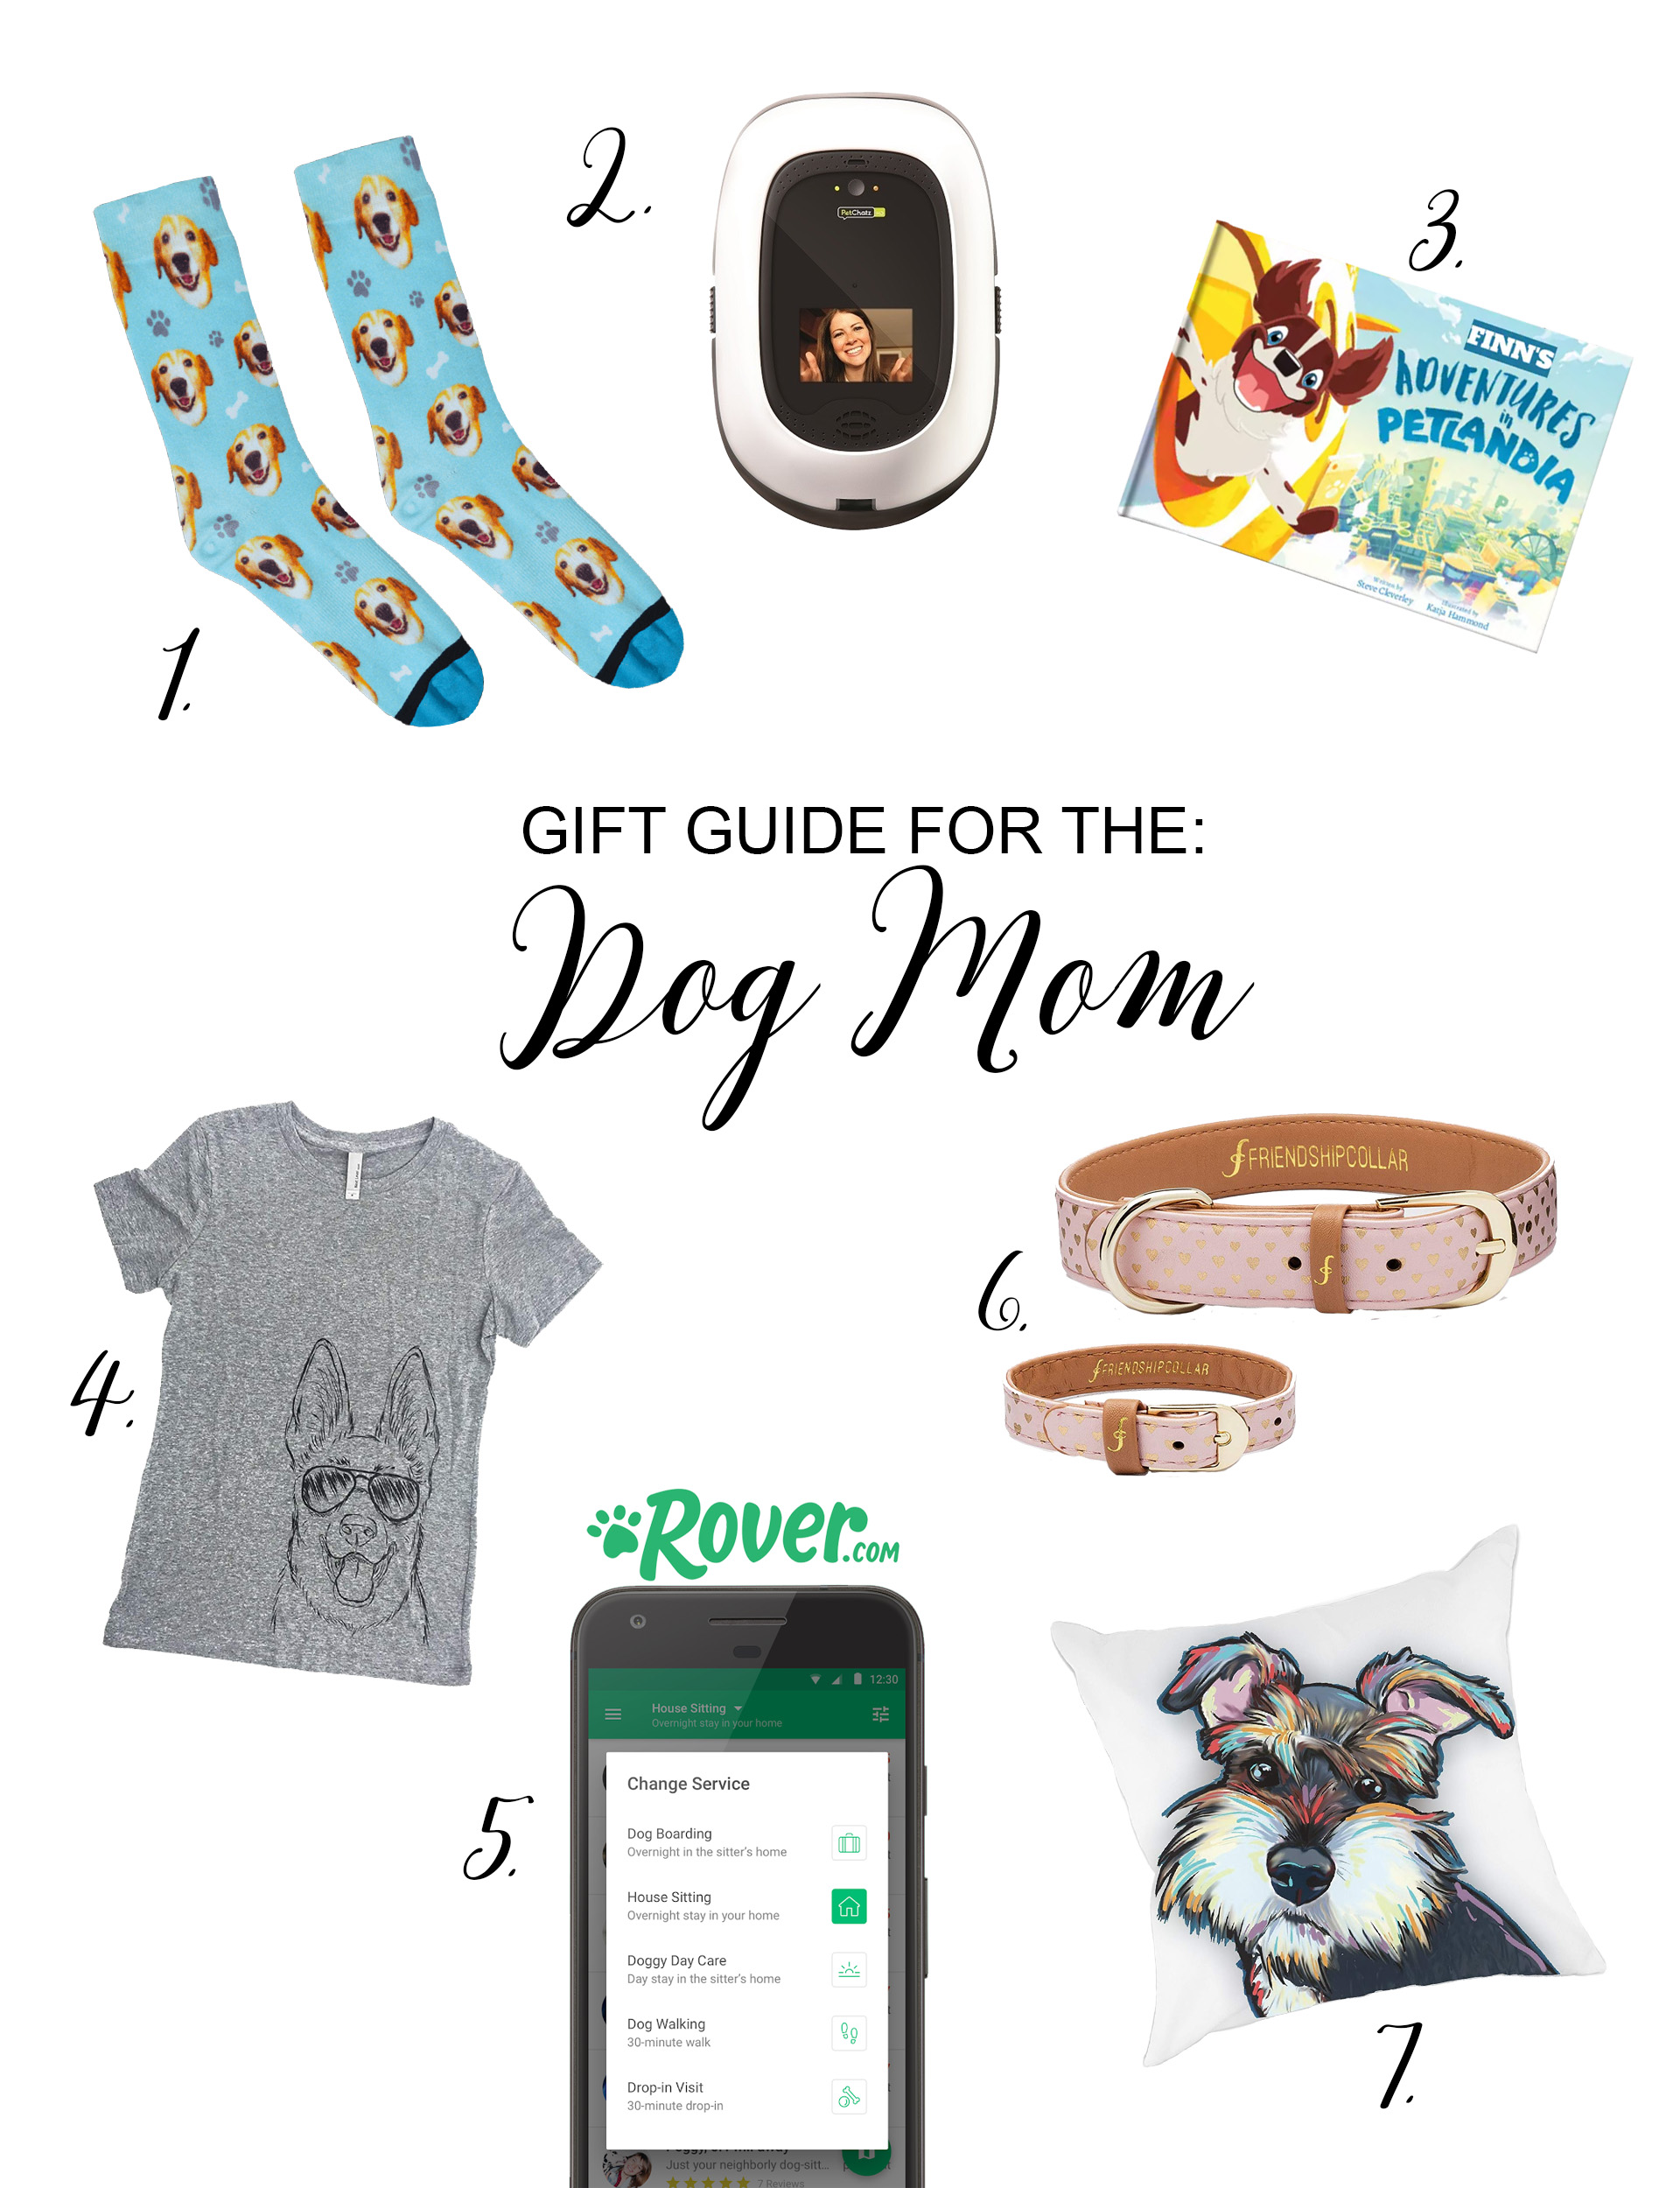 Gift Guide For The Dog Mom